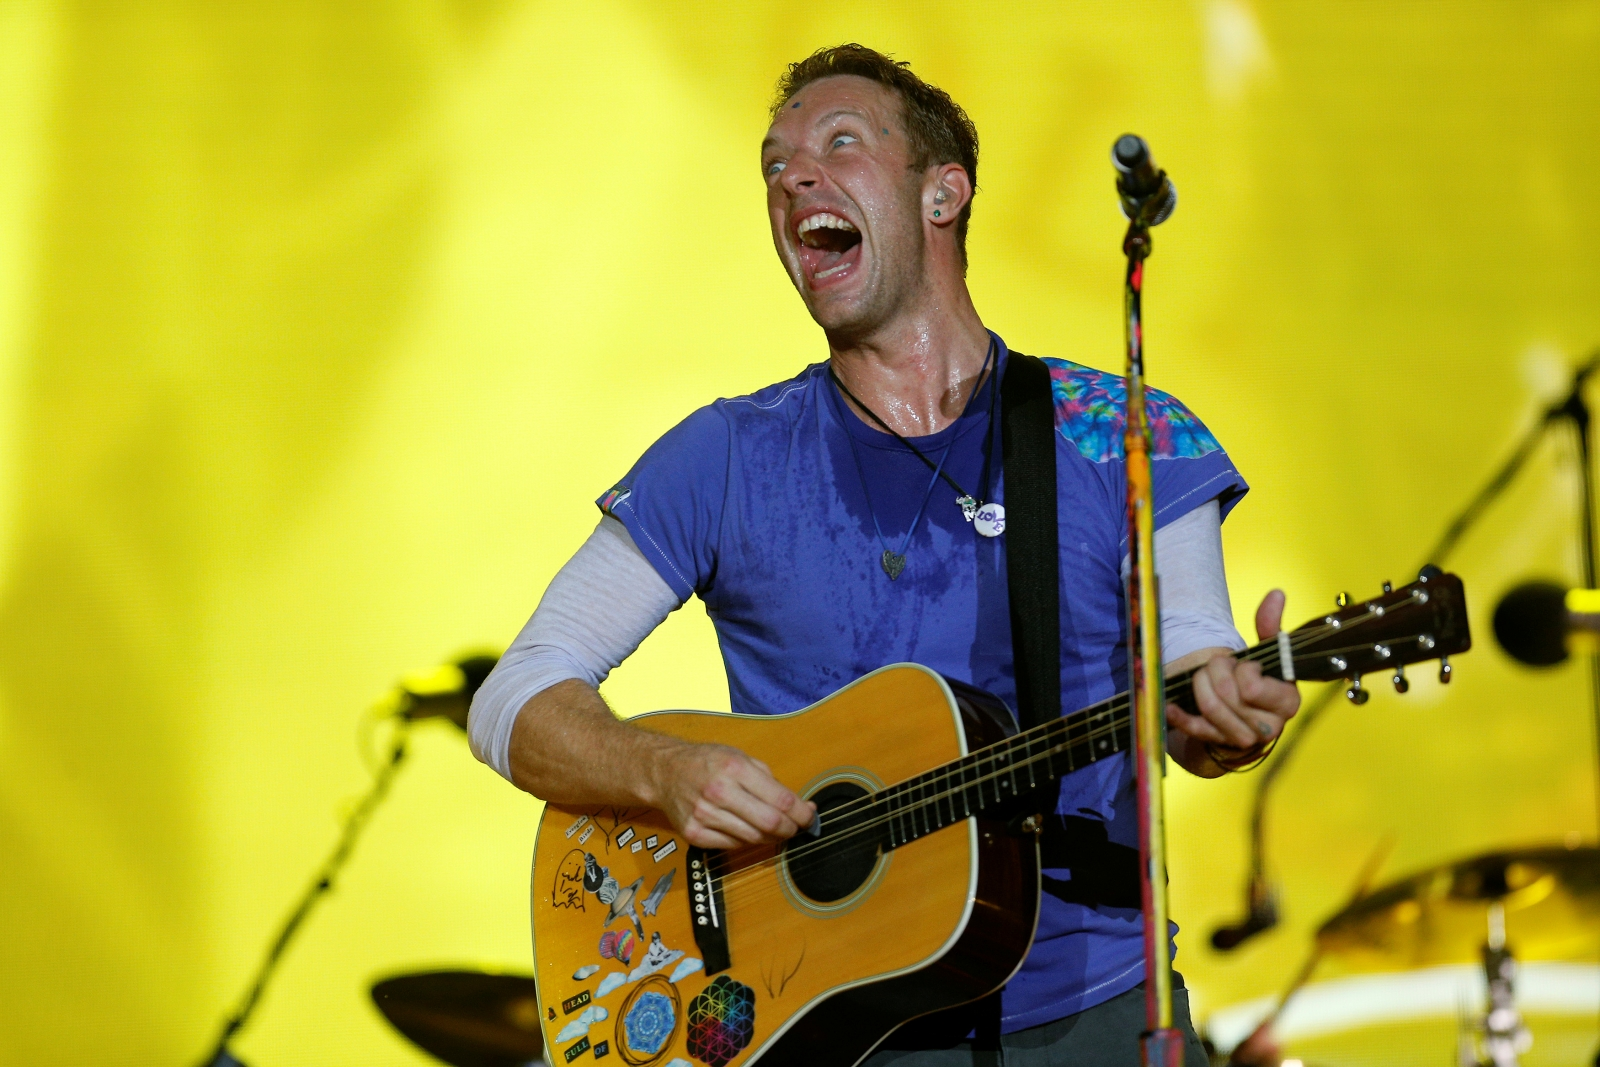 Chris Martin Coldplay American Idol